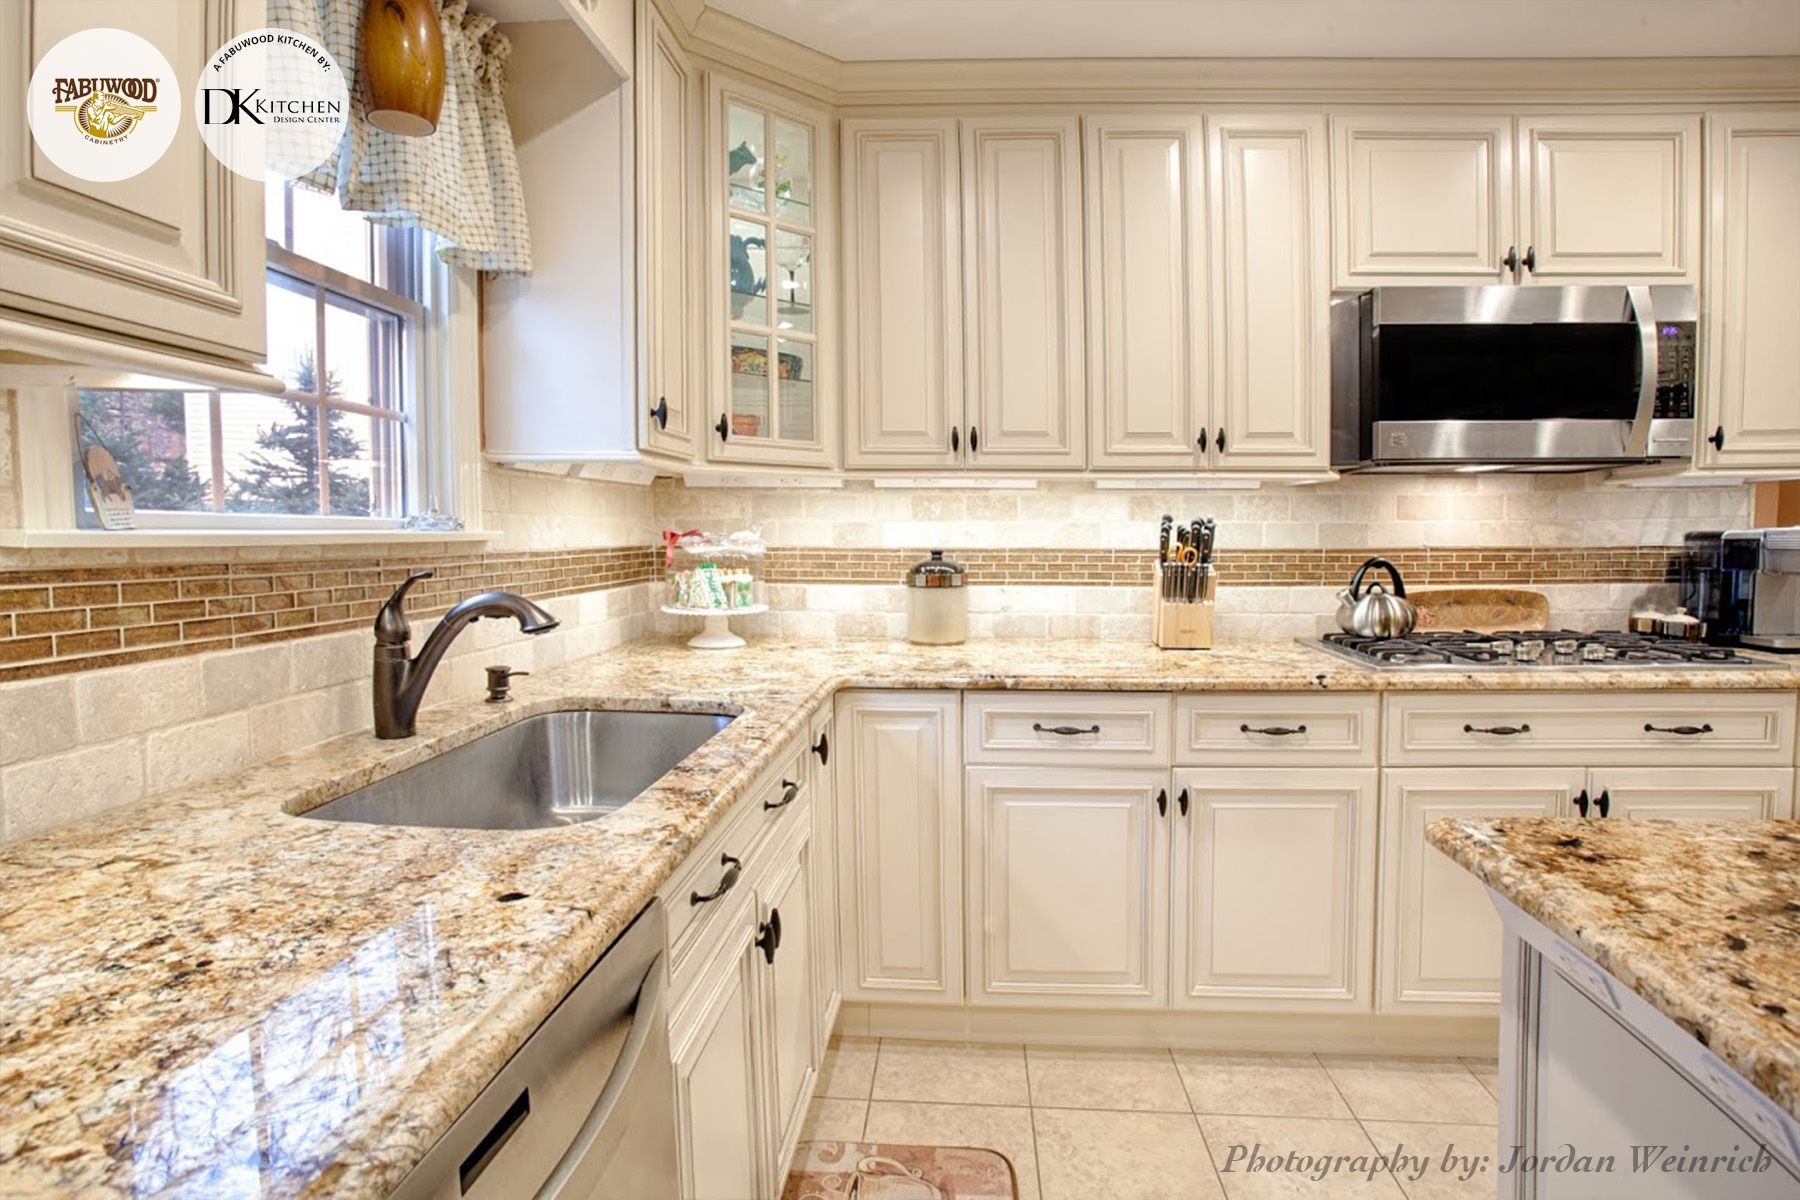 Best Kitchen Gallery: Another Stunning View Of The Wellington Kitchen In Ivory Glaze of Wellington Kitchen Cabinets on rachelxblog.com